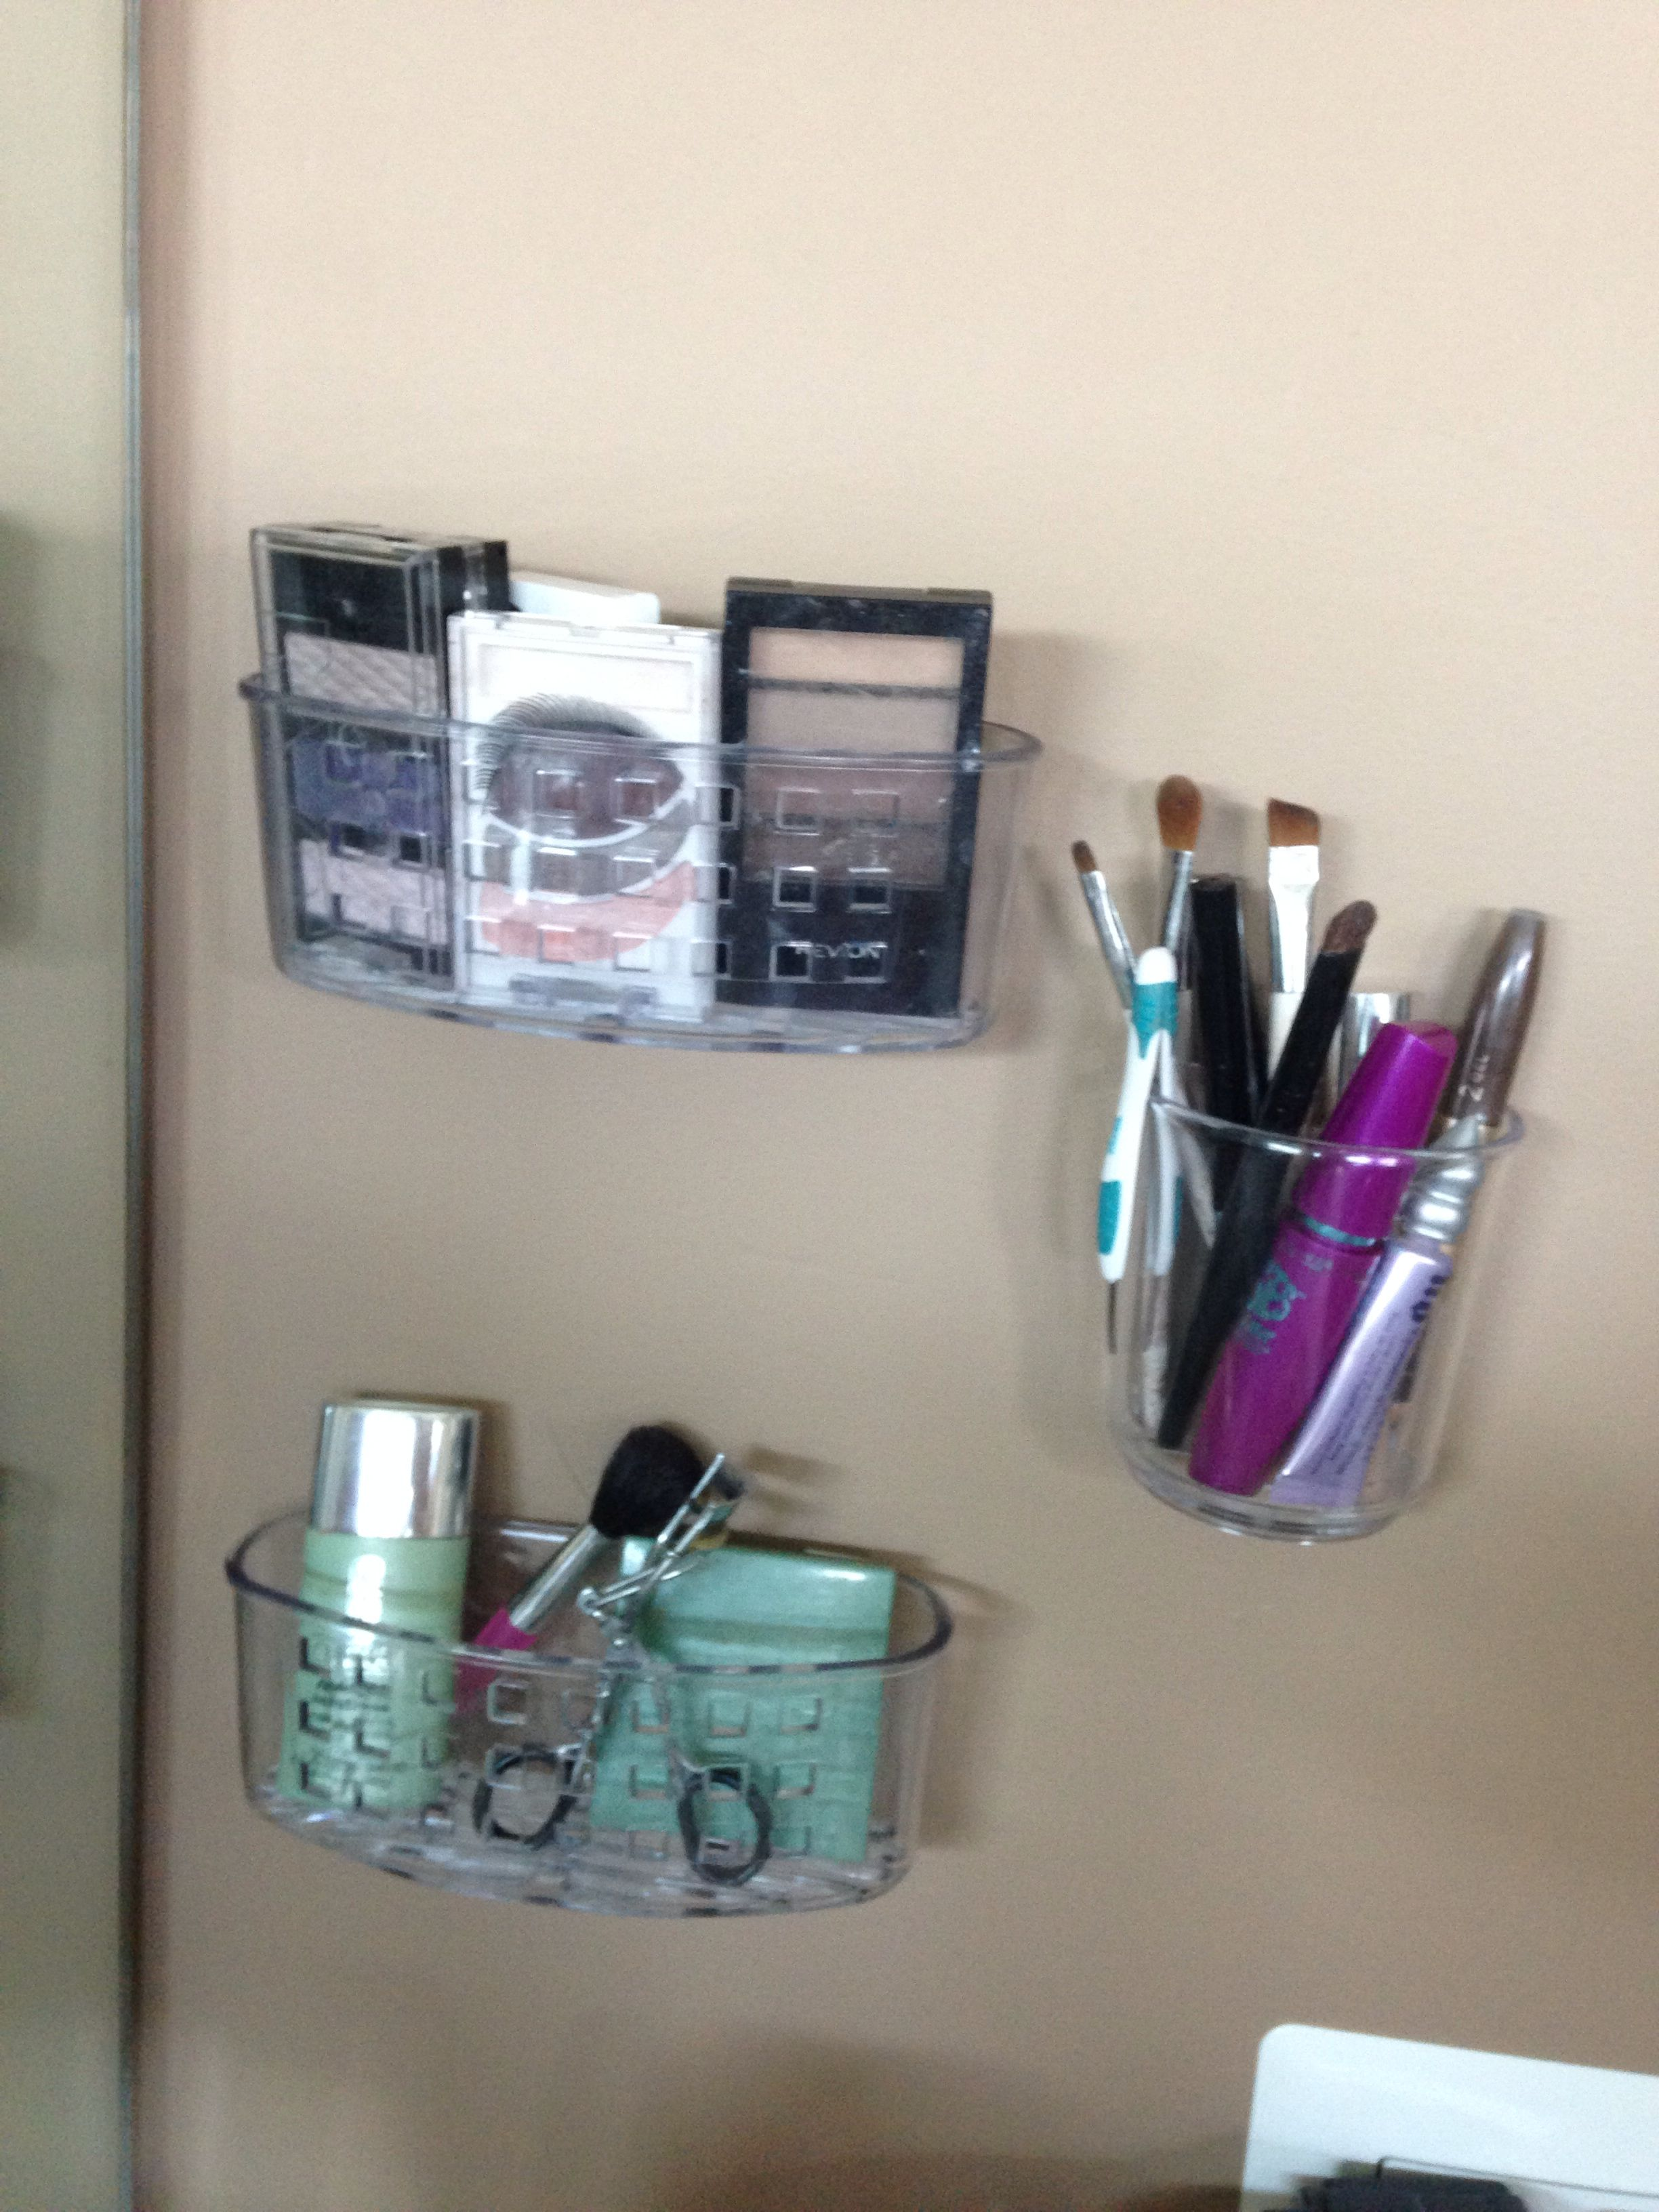 3m Command Strips On Shower Caddy To Hold Makeup Make Up